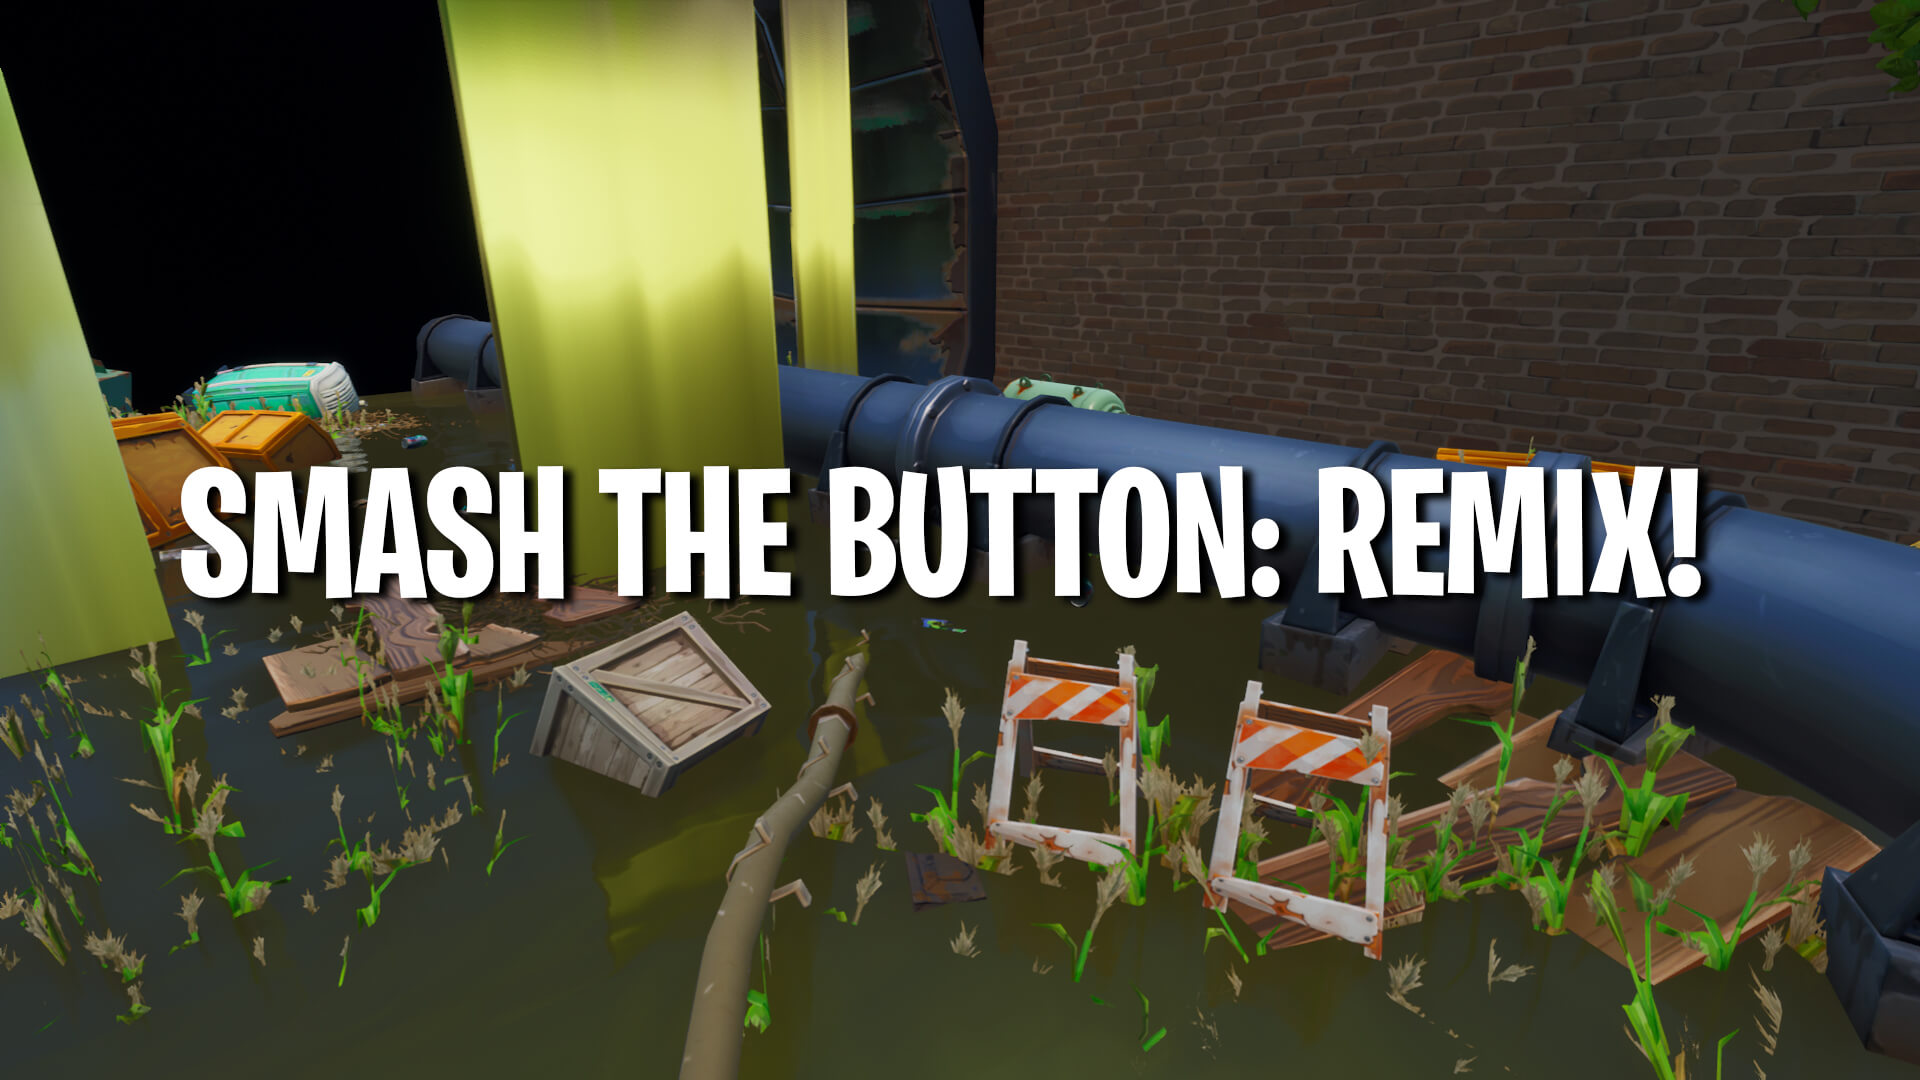 SMASH THE BUTTON: REMIX!